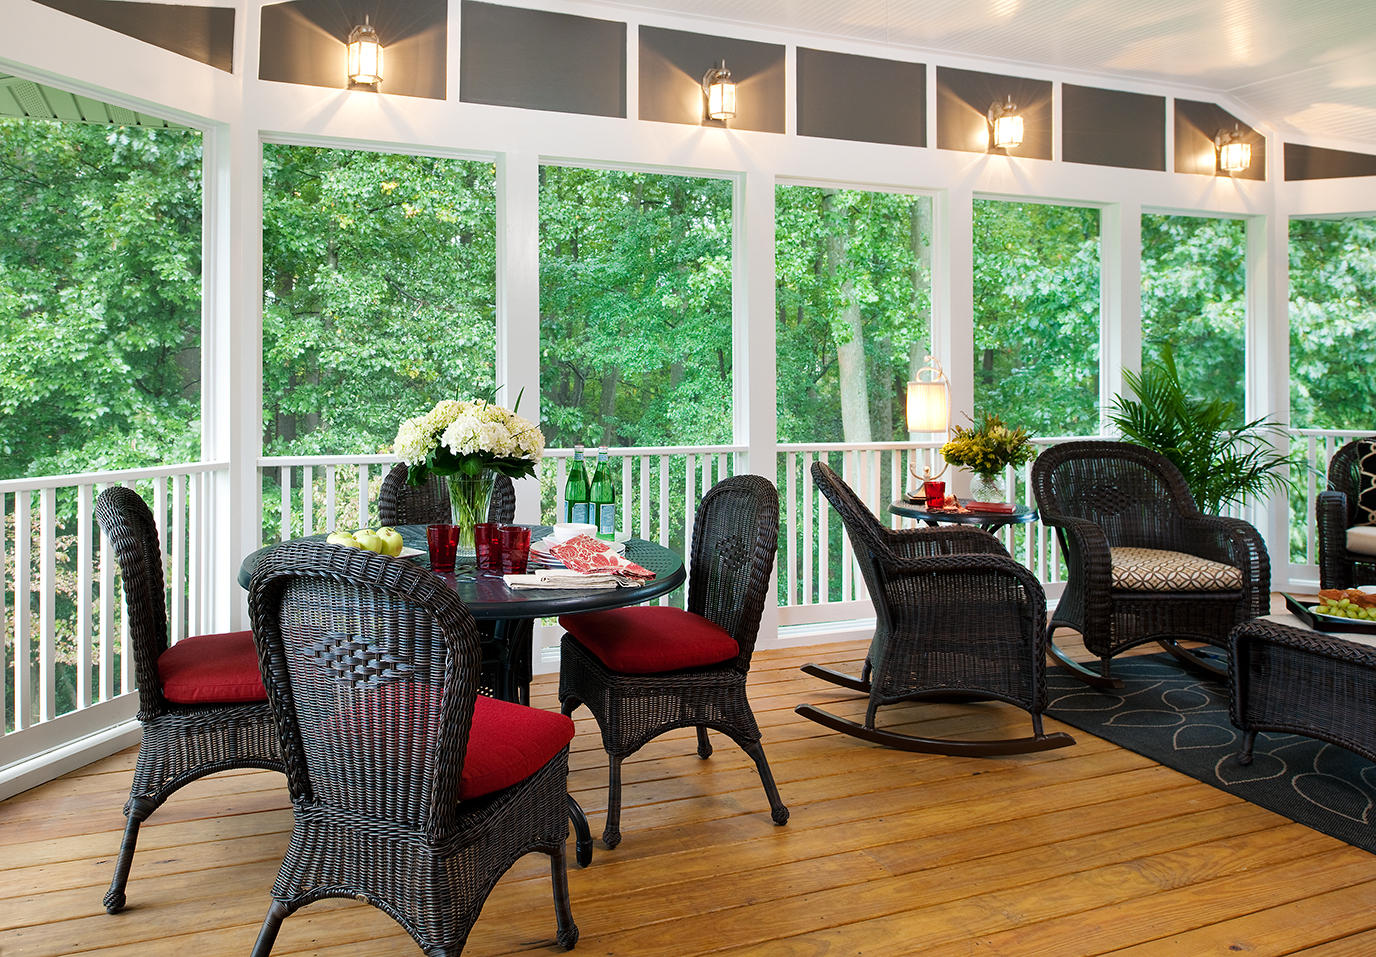 screened in porch desings_pops of color 2_source pinterest - Screen Porch Design Ideas